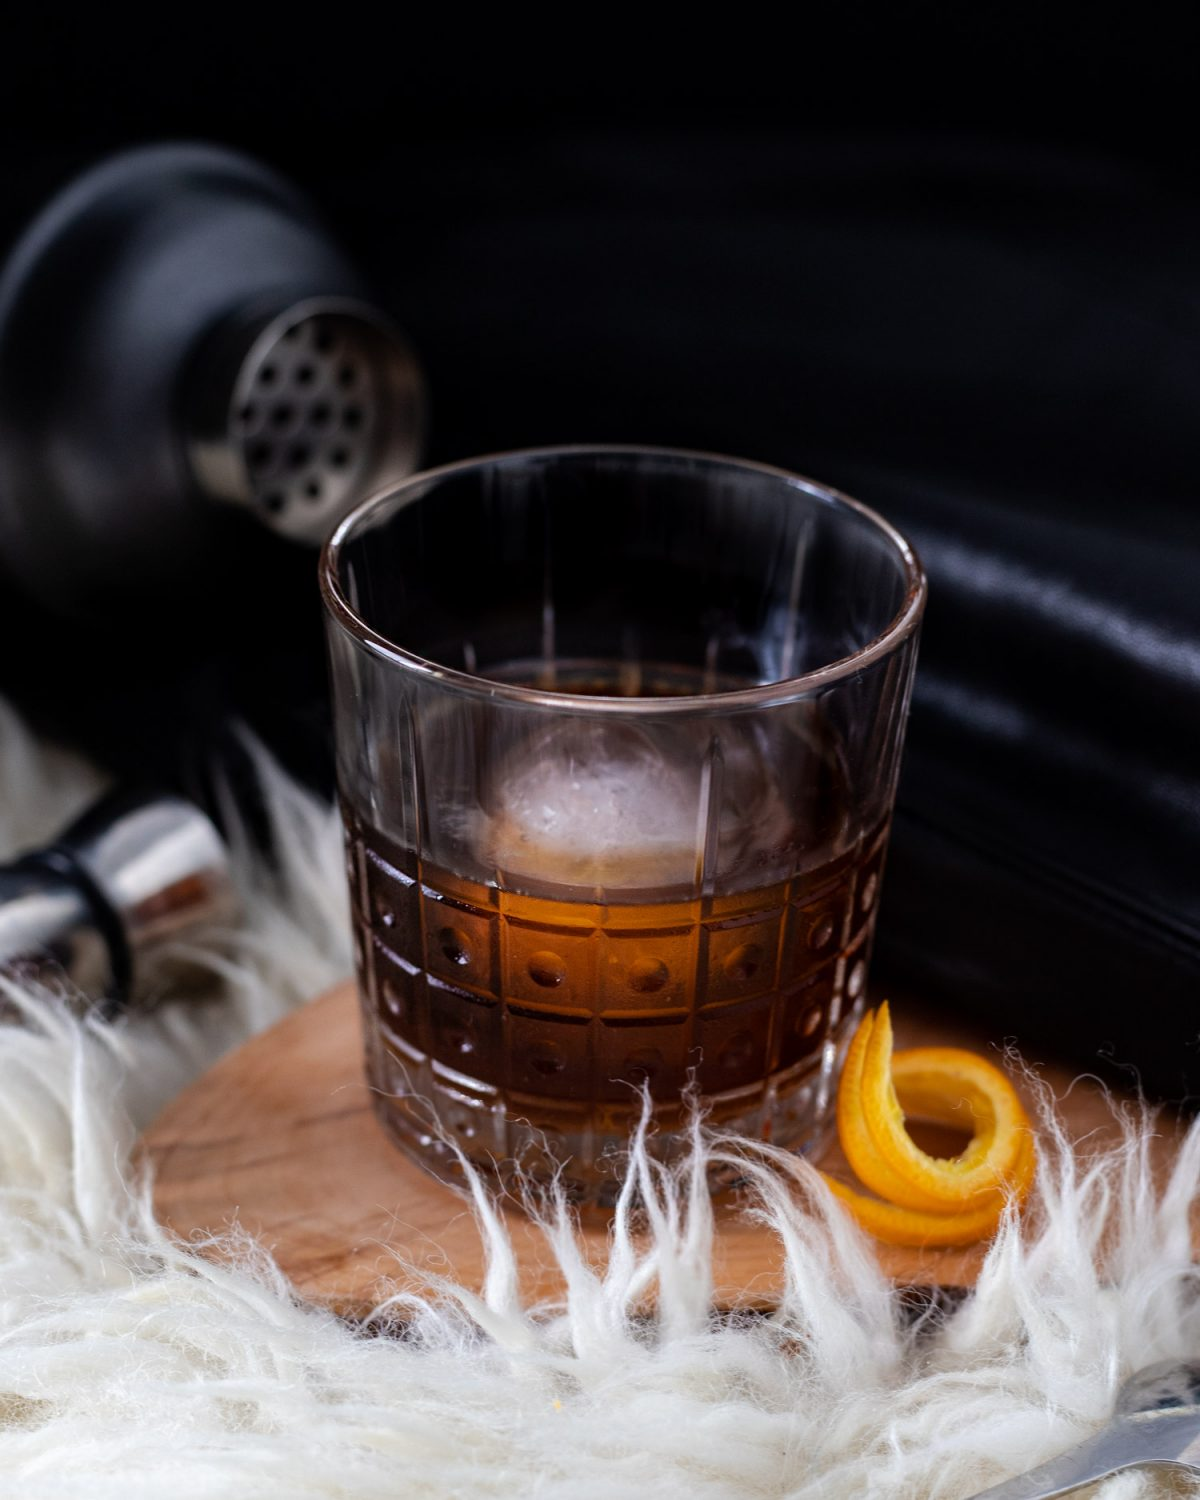 This Aegon cocktail is a Game of Thrones inspired cocktail. This coffee and cognac cocktail is served like a coffee Negroni and could possibly revive you from the dead. Inspired by our favorite Aegon Targaryen, Jon Snow. Perfect for a Game of Thrones watch party! #ElleTalk #Cognac #Negroni #CoffeeCocktail #Coffee #GameofThrones #GameofThronesParty